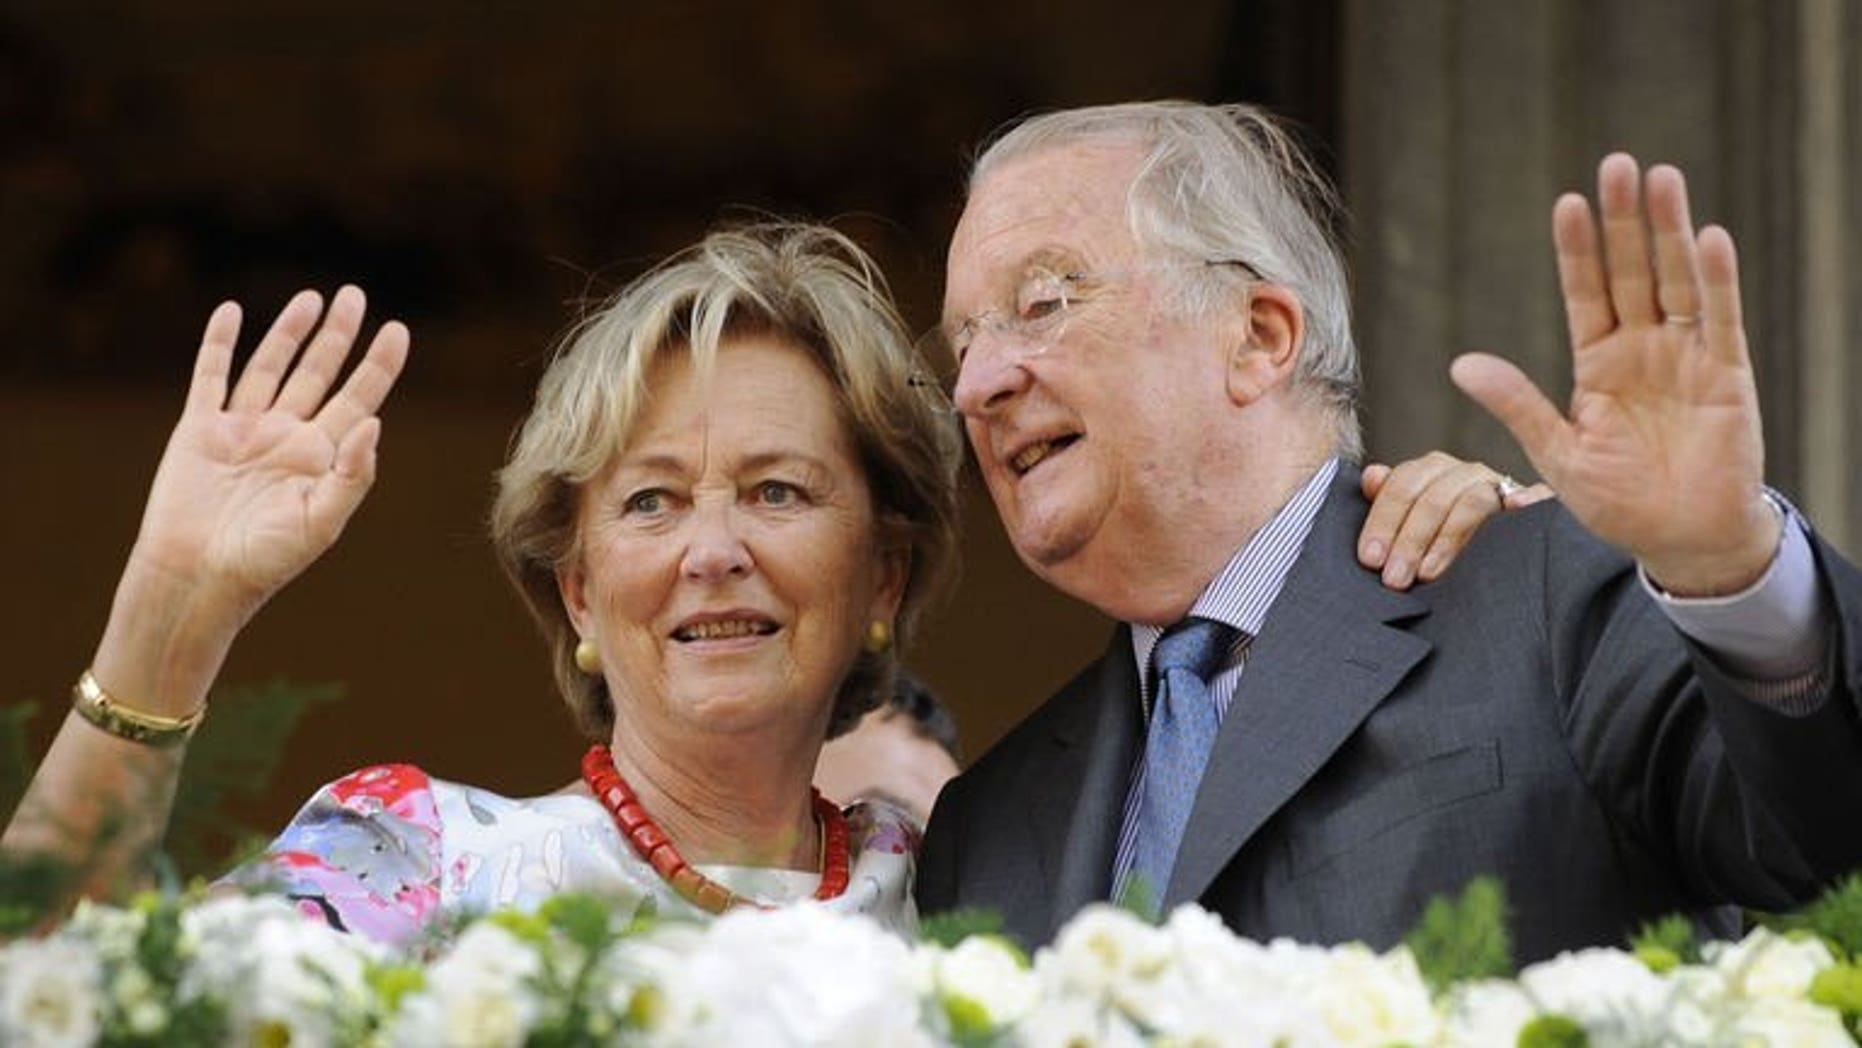 King Albert II of Belgium and Queen Paola wave to the crowd on July 19, 2013 during a visit in Eupen in Liege. The visit to the southern Belgian city was Albert's last in 20 years of a reign that comes to a close Sunday.